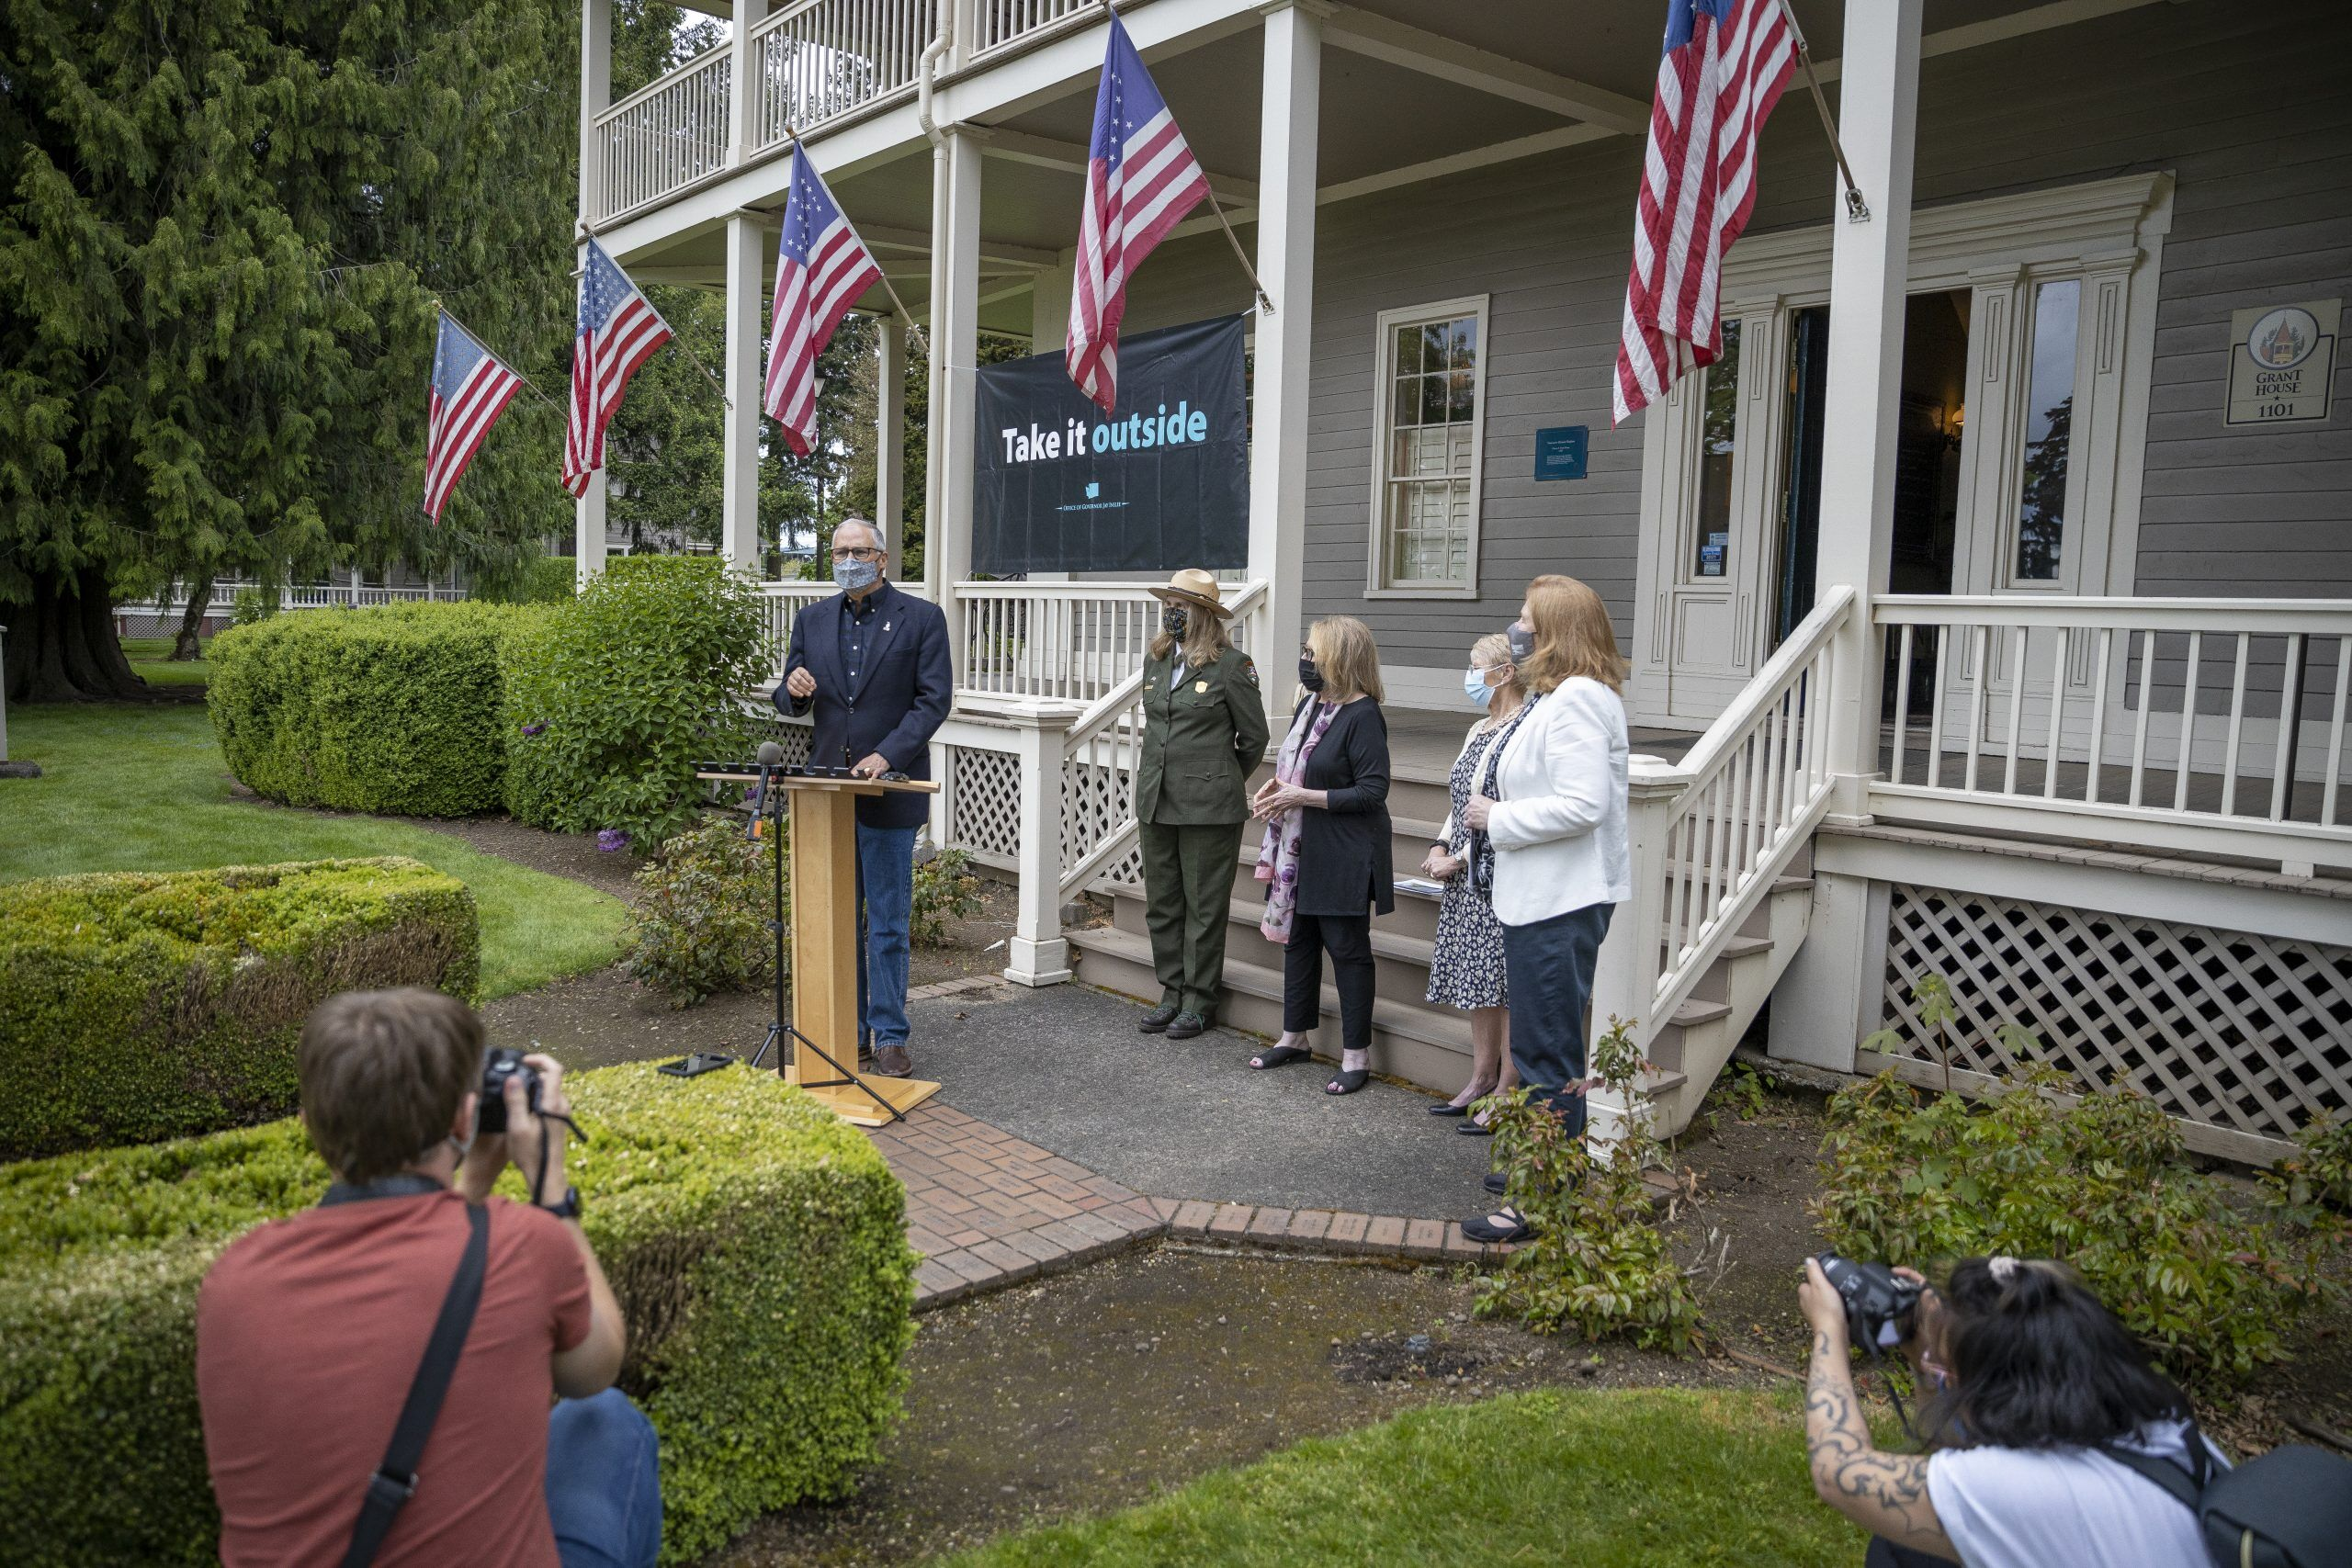 Inslee was joined by Superintendent Tracy Fortmann of the Fort Vancouver Historic site, Stacey Graham the interim president and CEO of the Historic Trust, Liz Luce the board president for the Friends of Fort Vancouver, and Vancouver Mayor Anne McEnerny-Ogle. Photo by Jacob Granneman